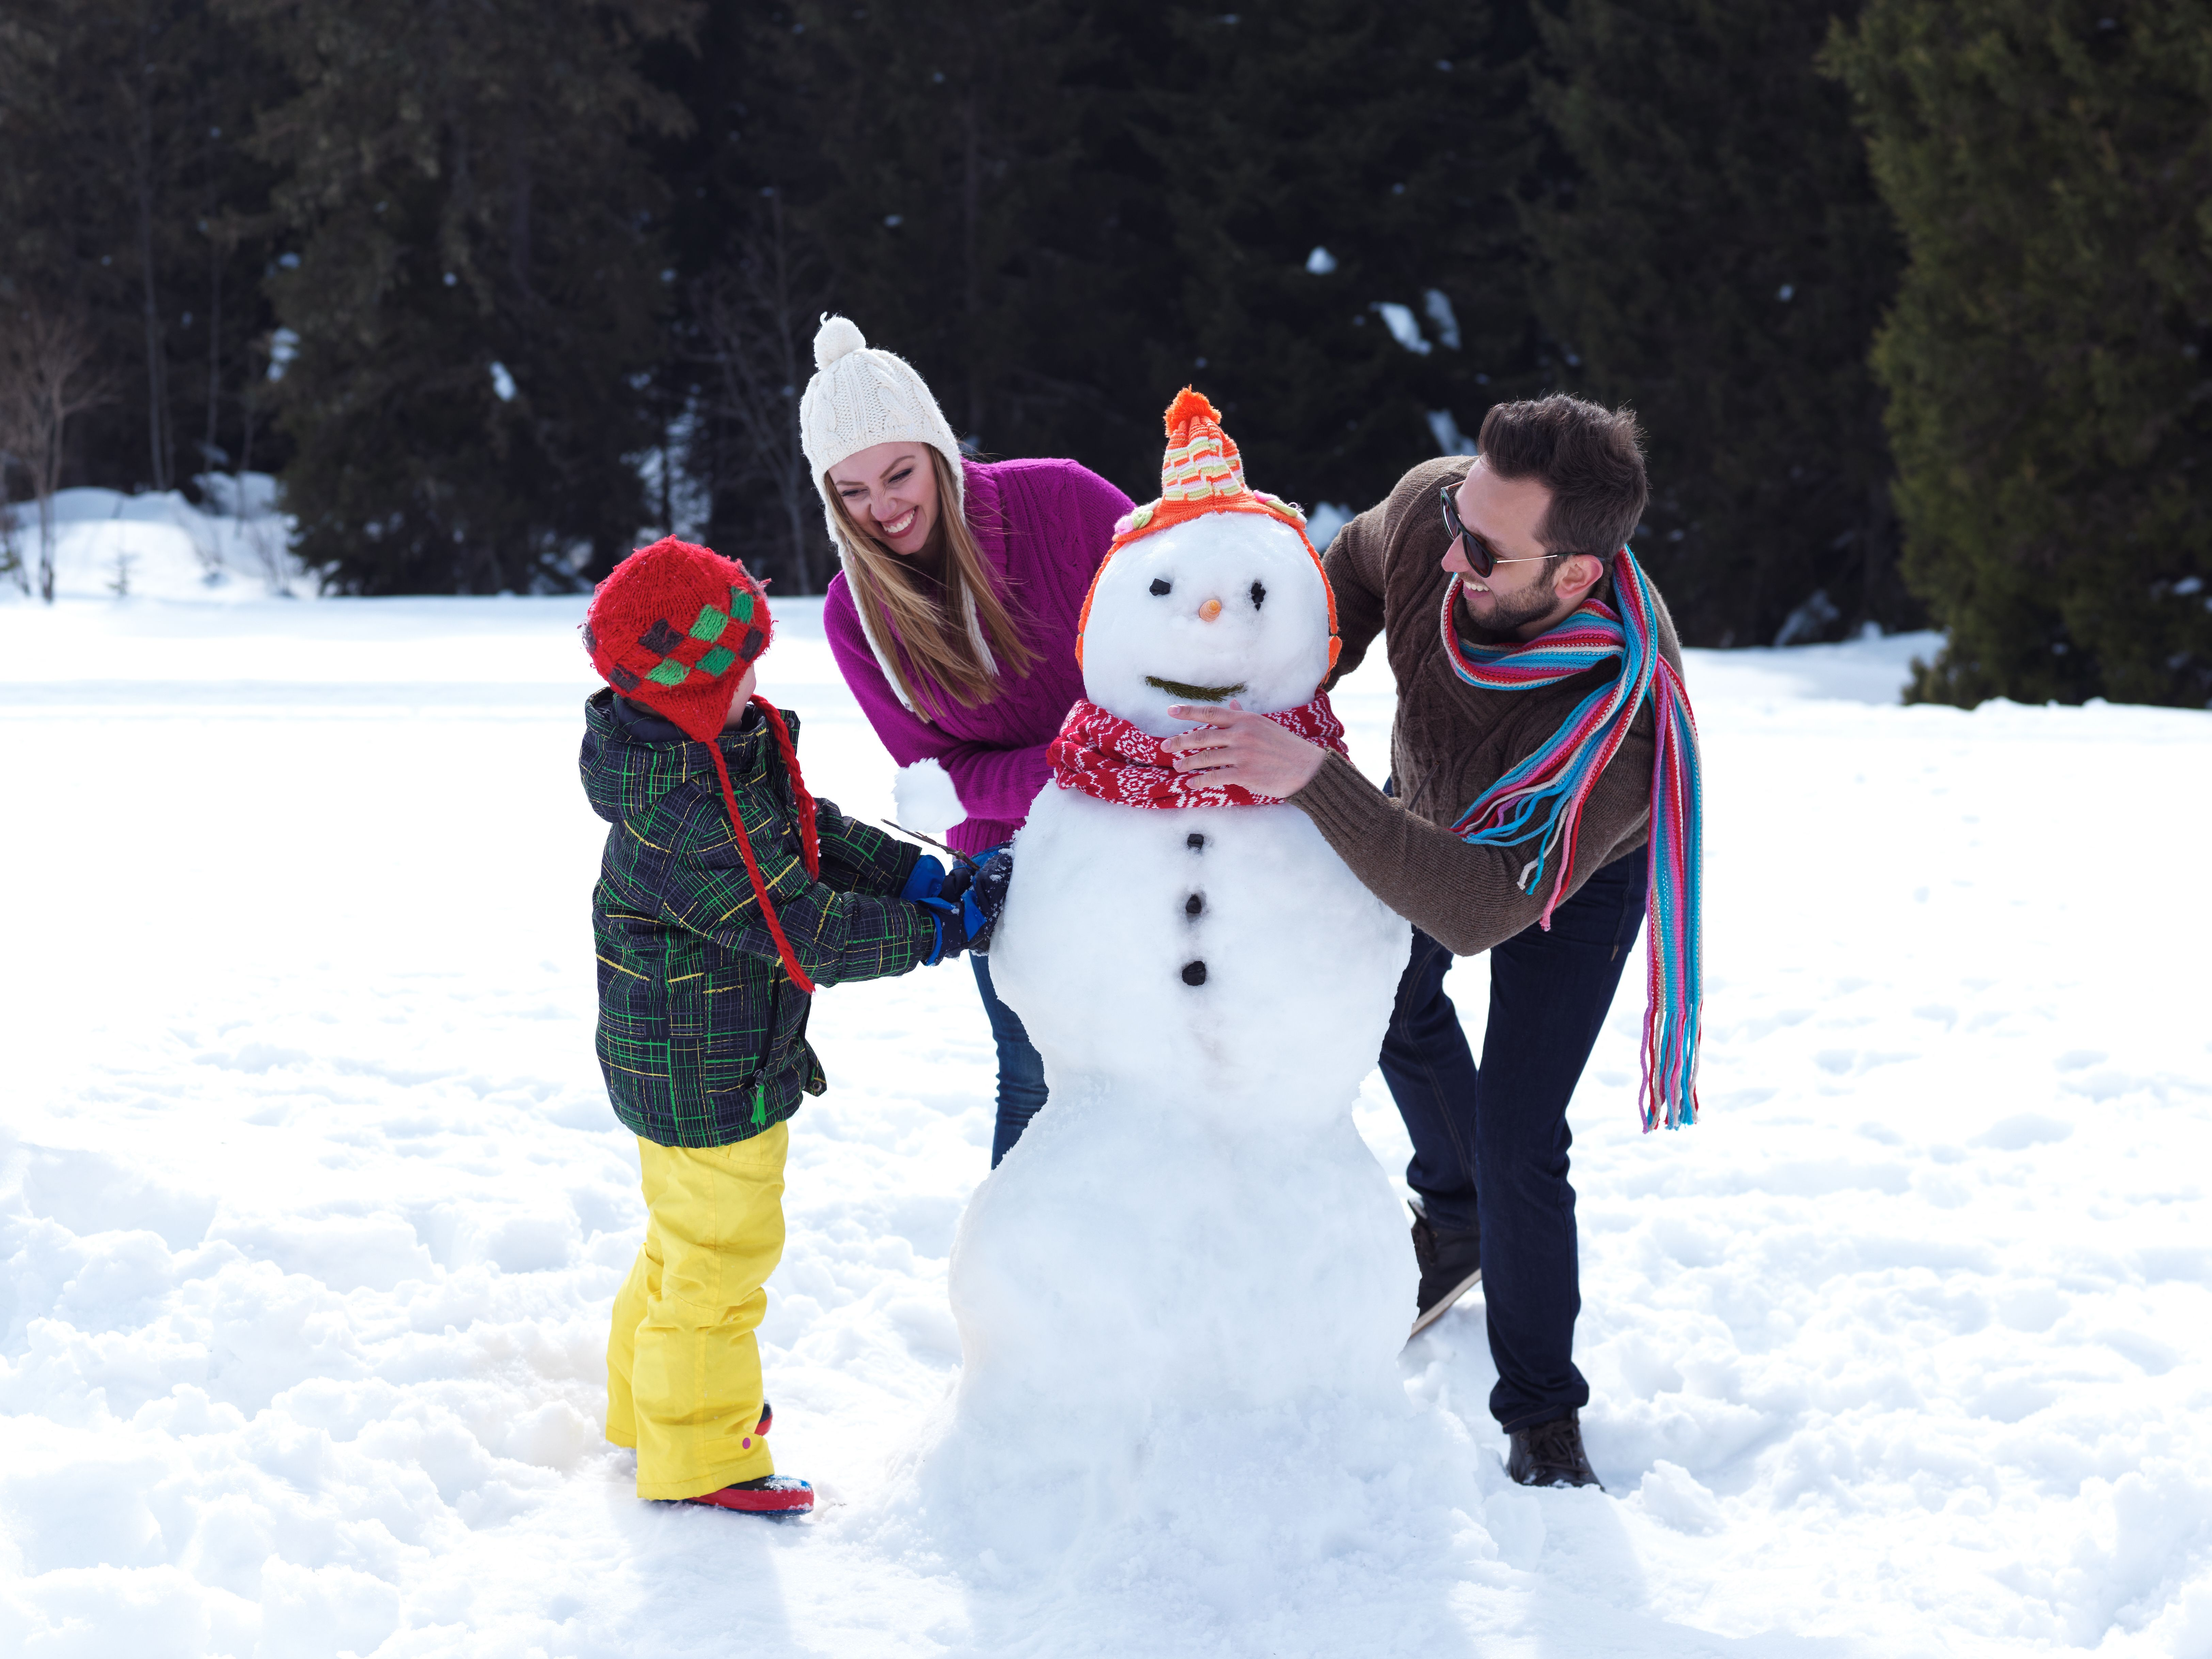 Building snowmen and sledding can both be great ways to